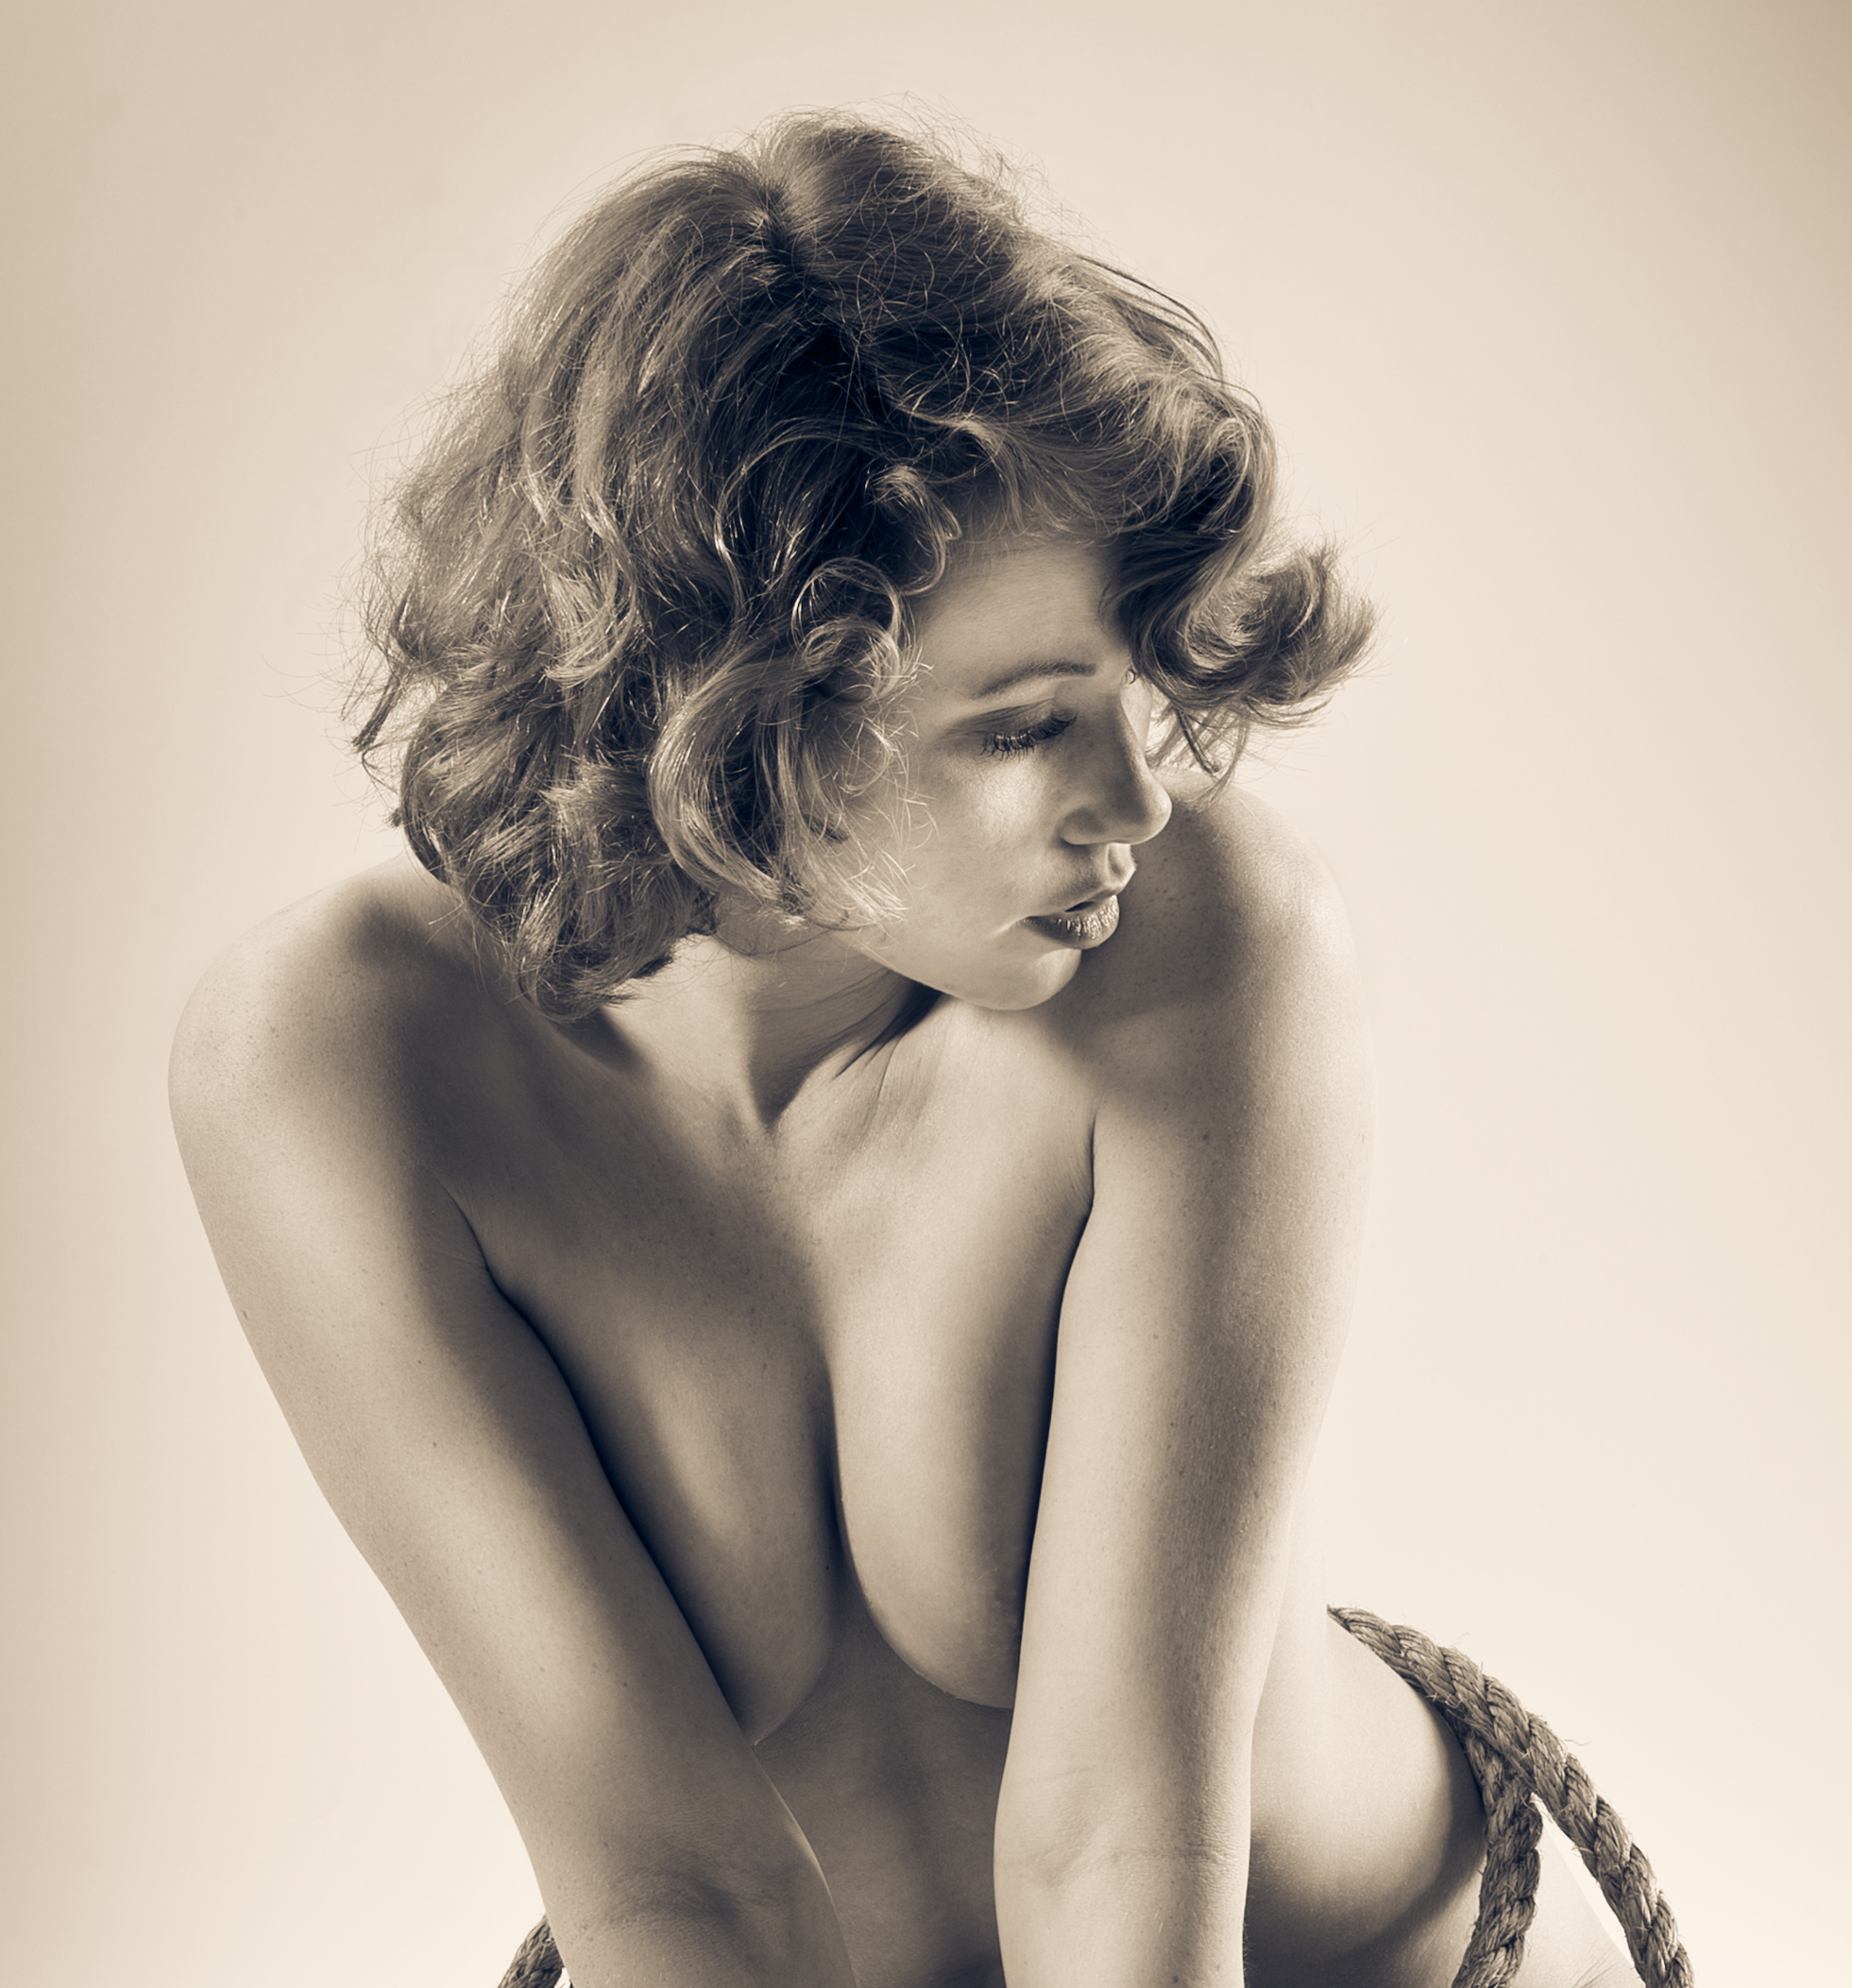 limited edition archival photograph erotic art nude